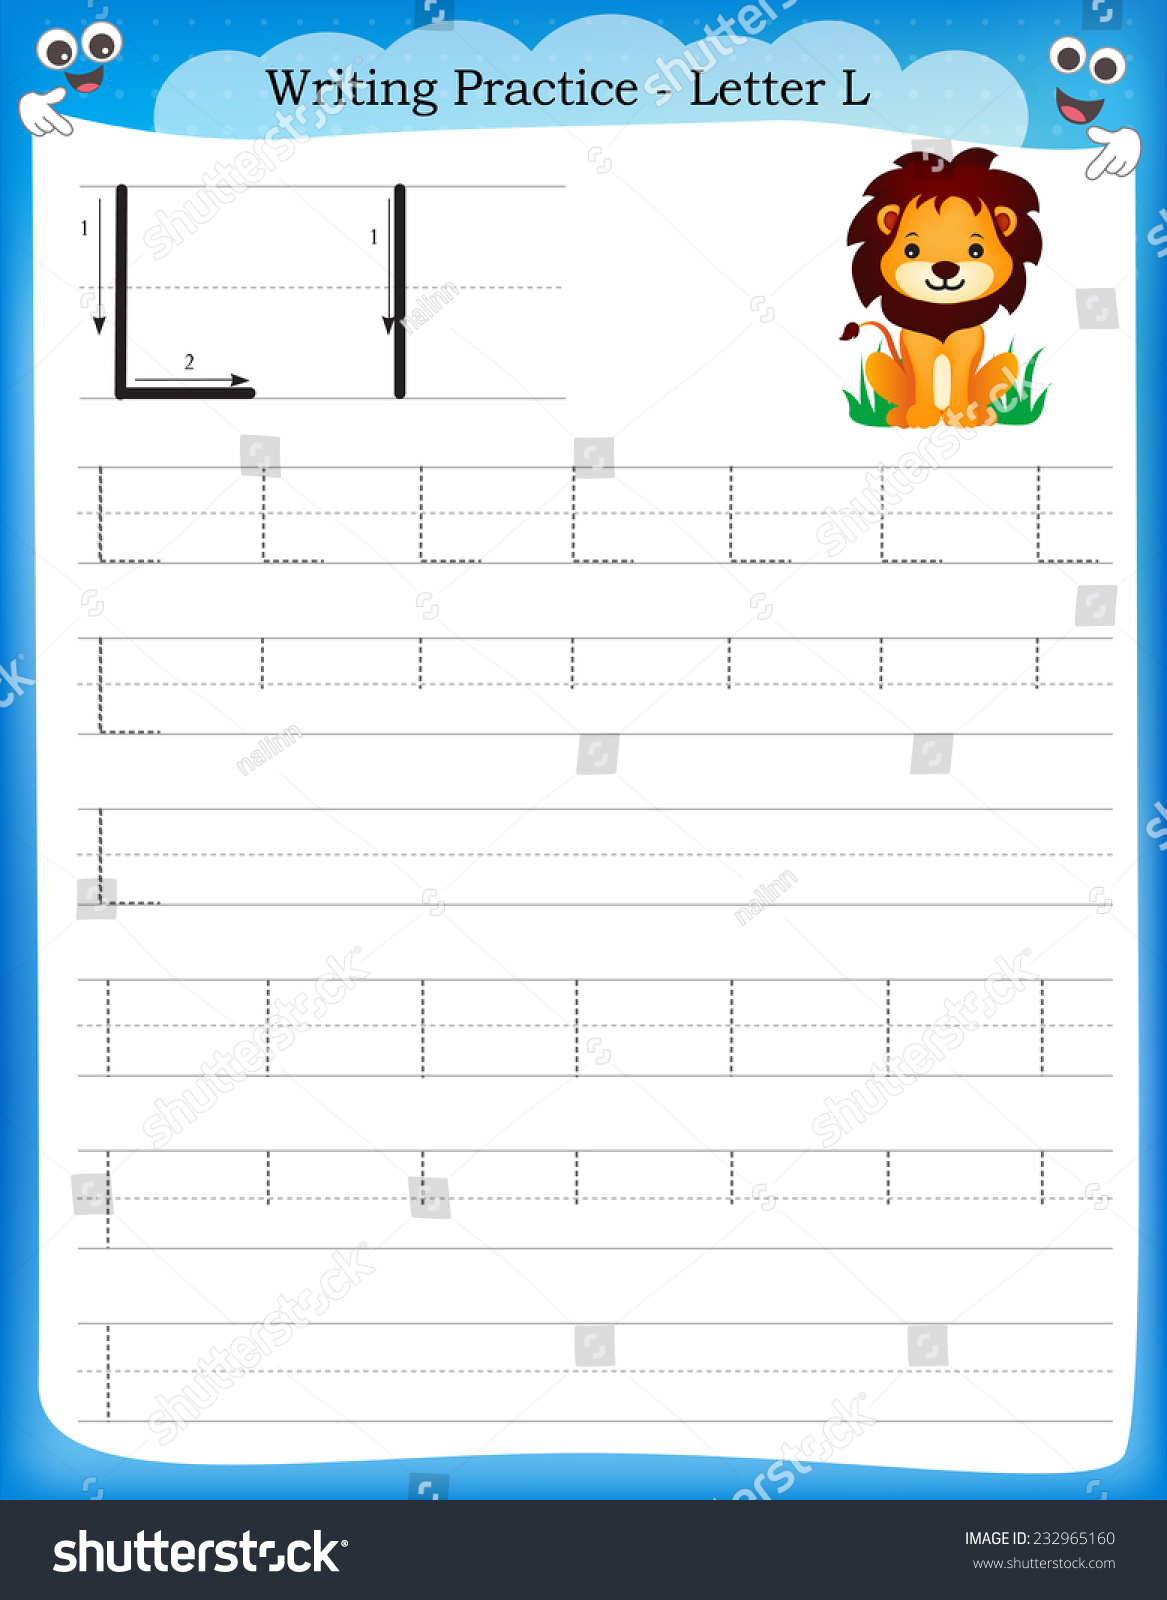 Writing Practice Letter L Printable Worksheet With Clip Art For Preschool Kindergarten Kids To